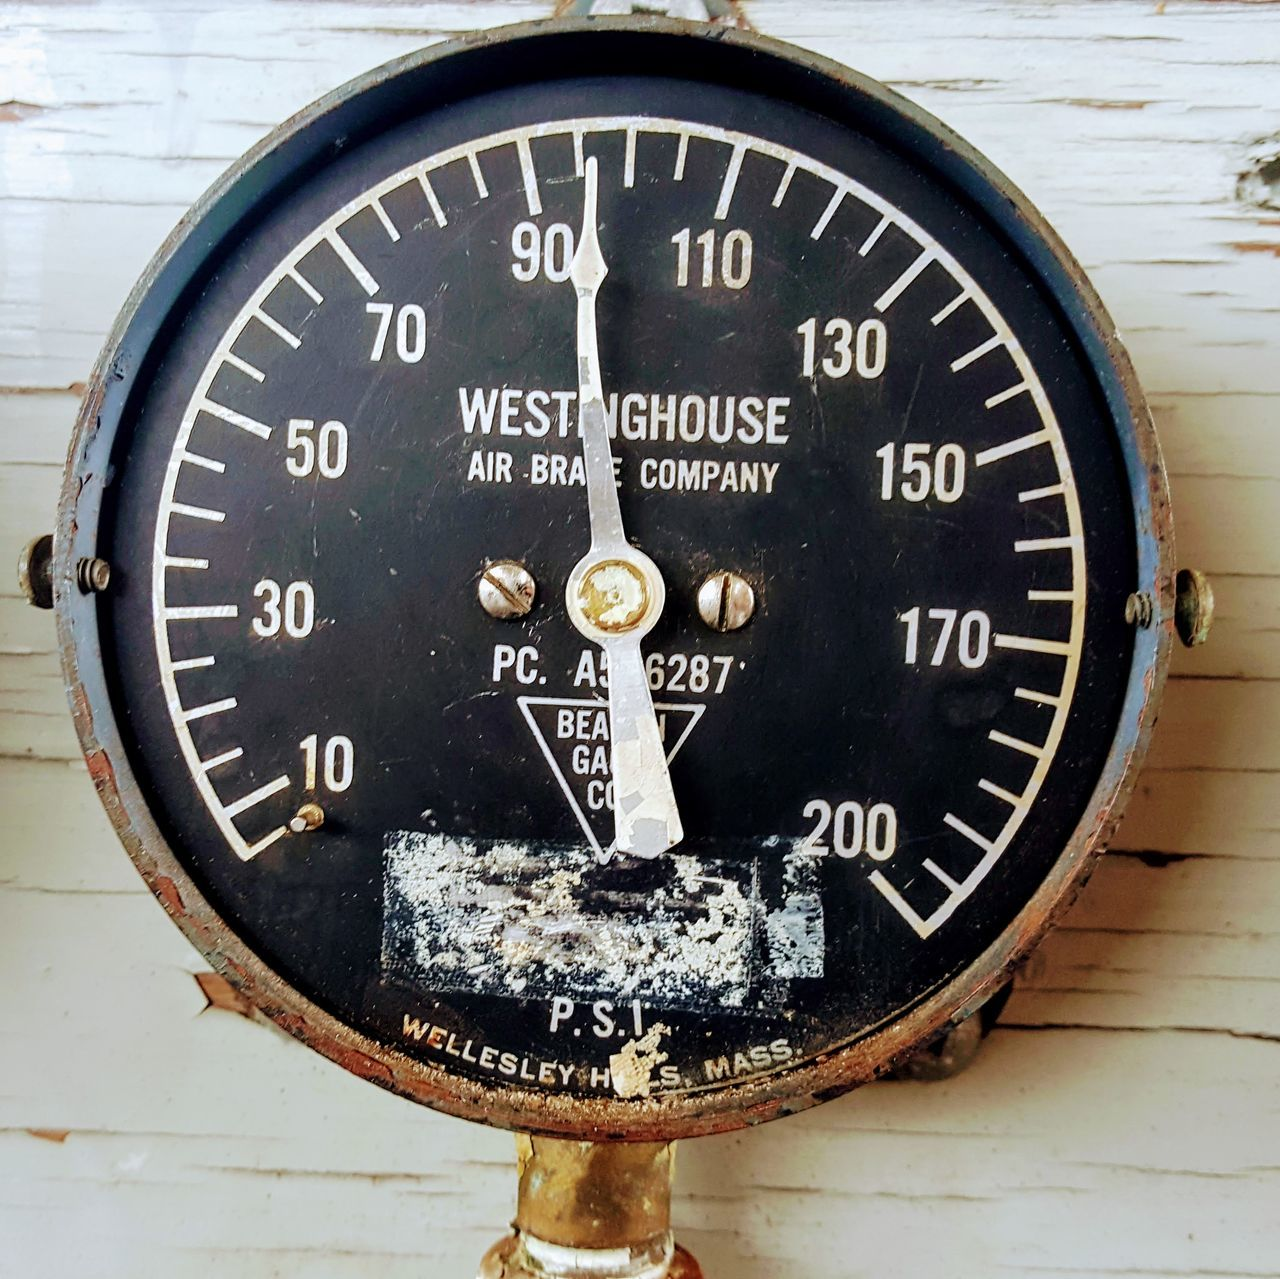 no people, close-up, day, gauge, outdoors